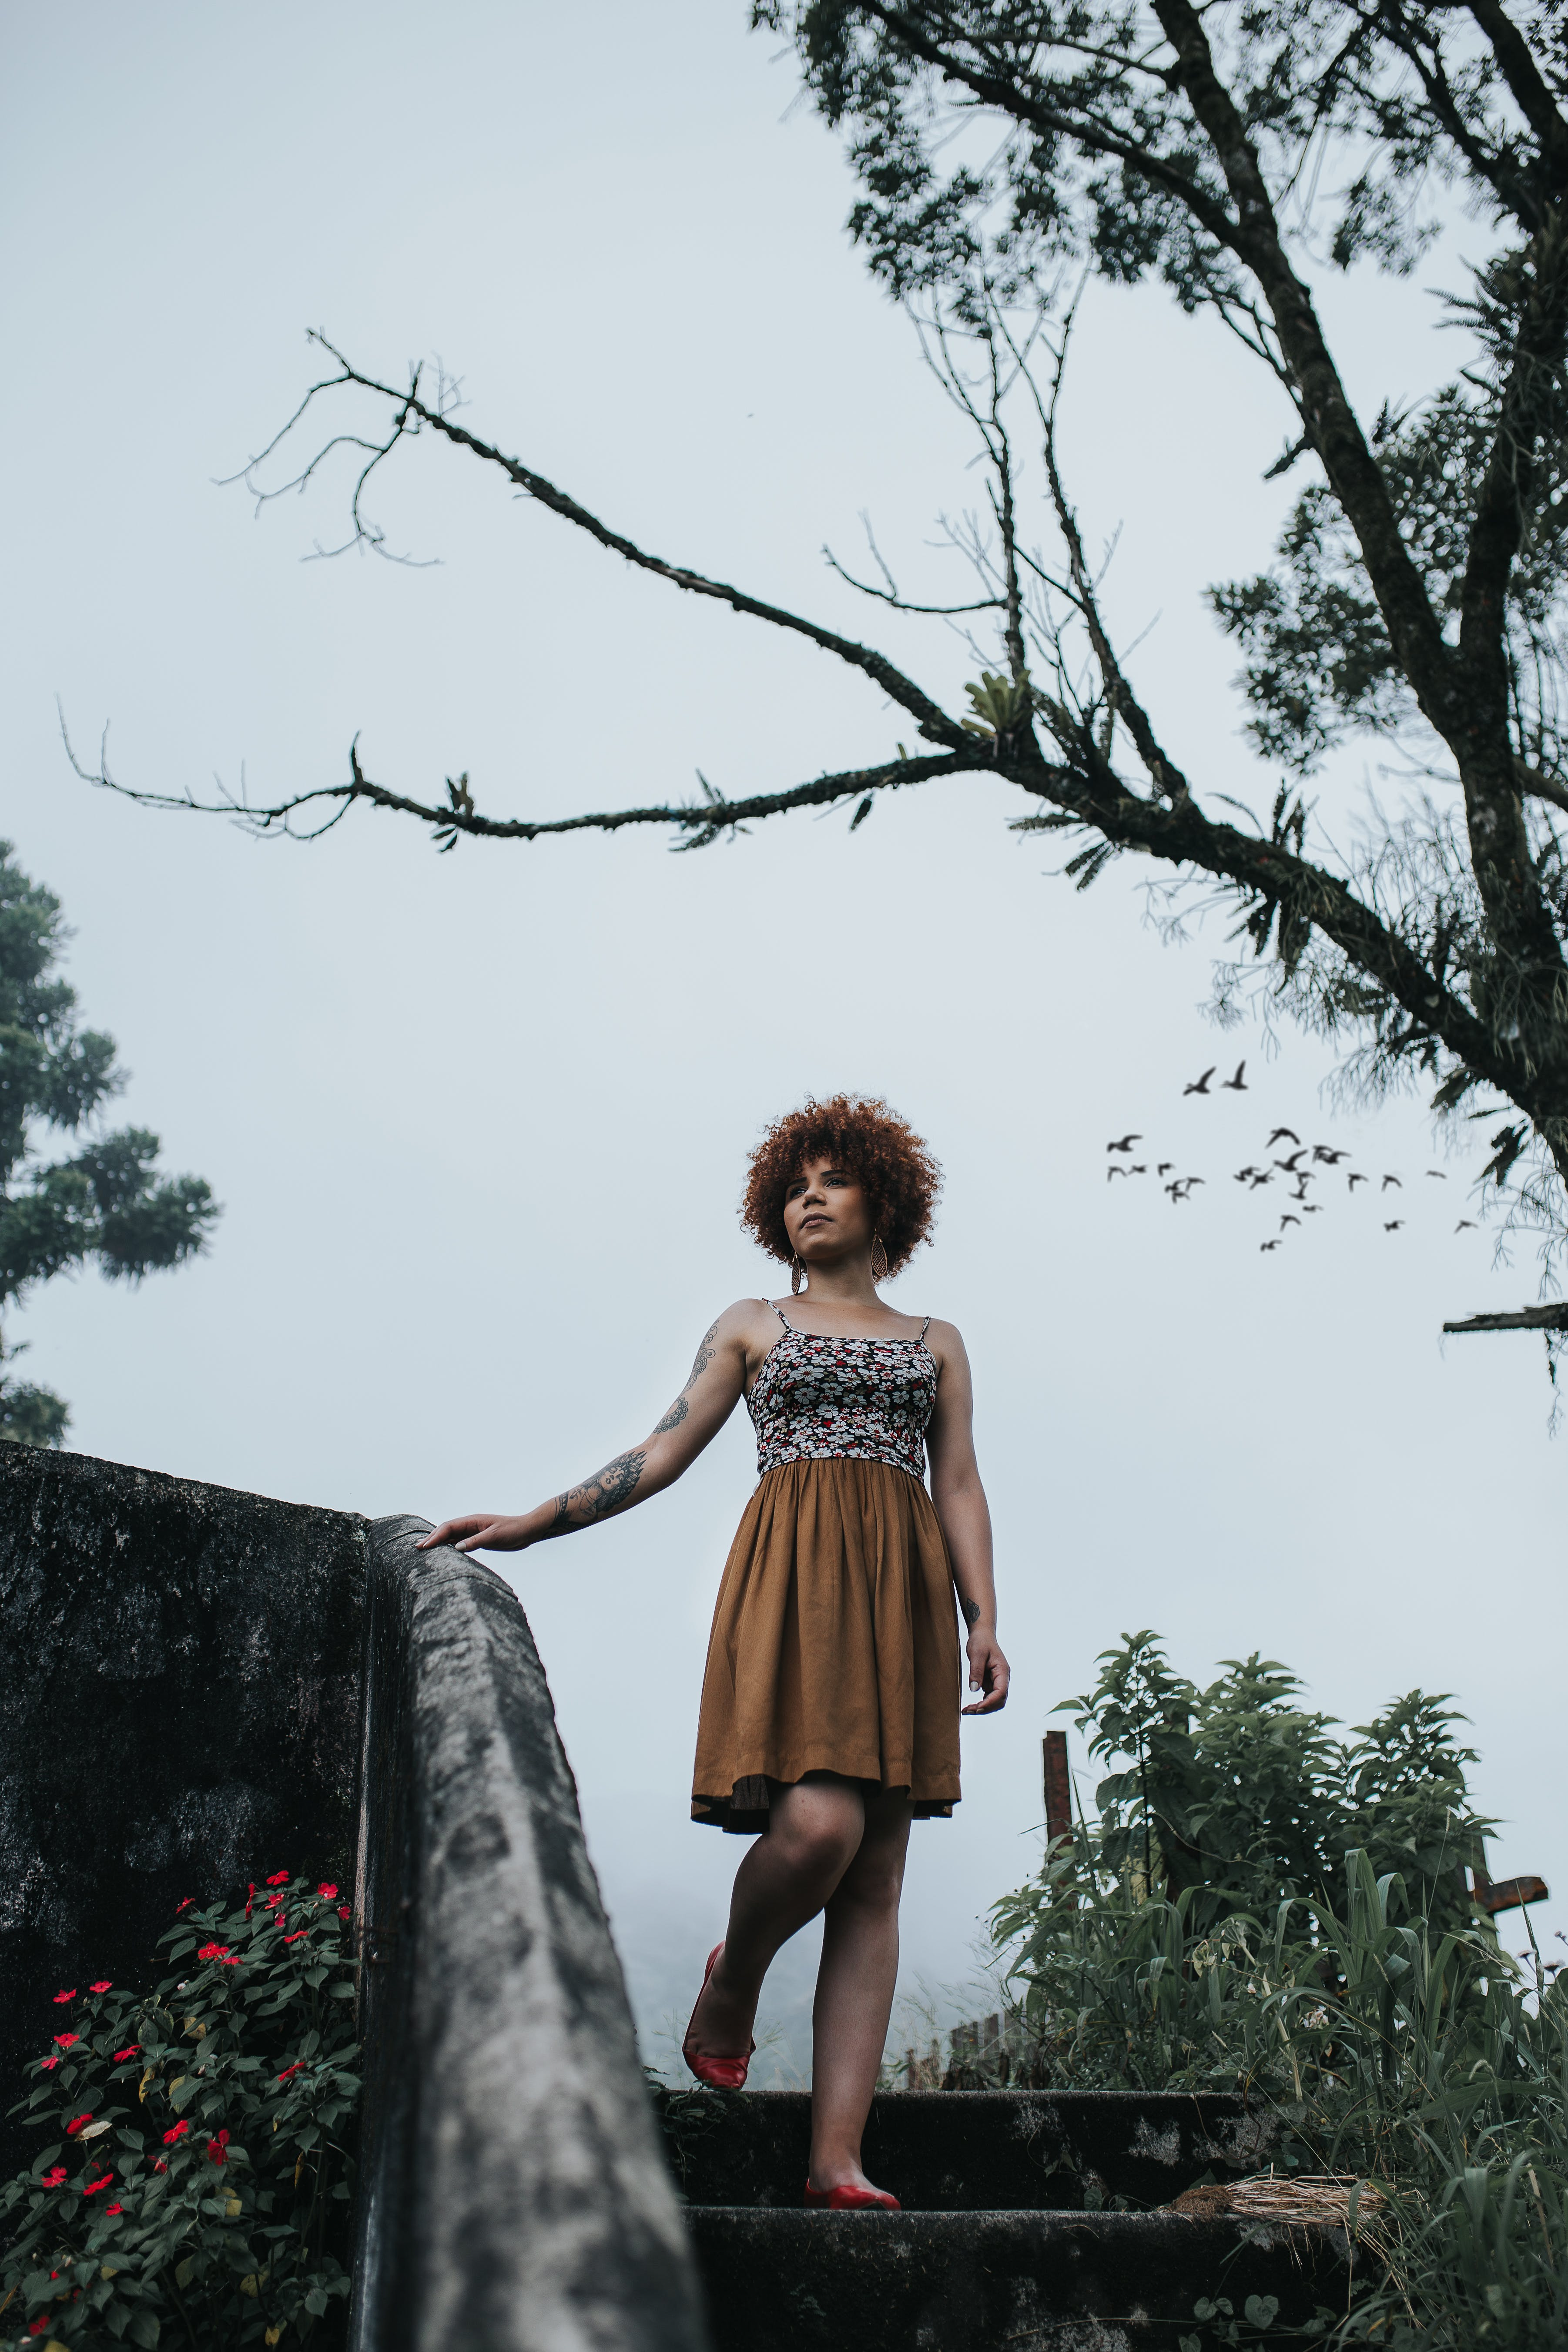 Woman Wearing Red and Black Spaghetti Strap Dress Holding Concrete Railings Under Bare Tree